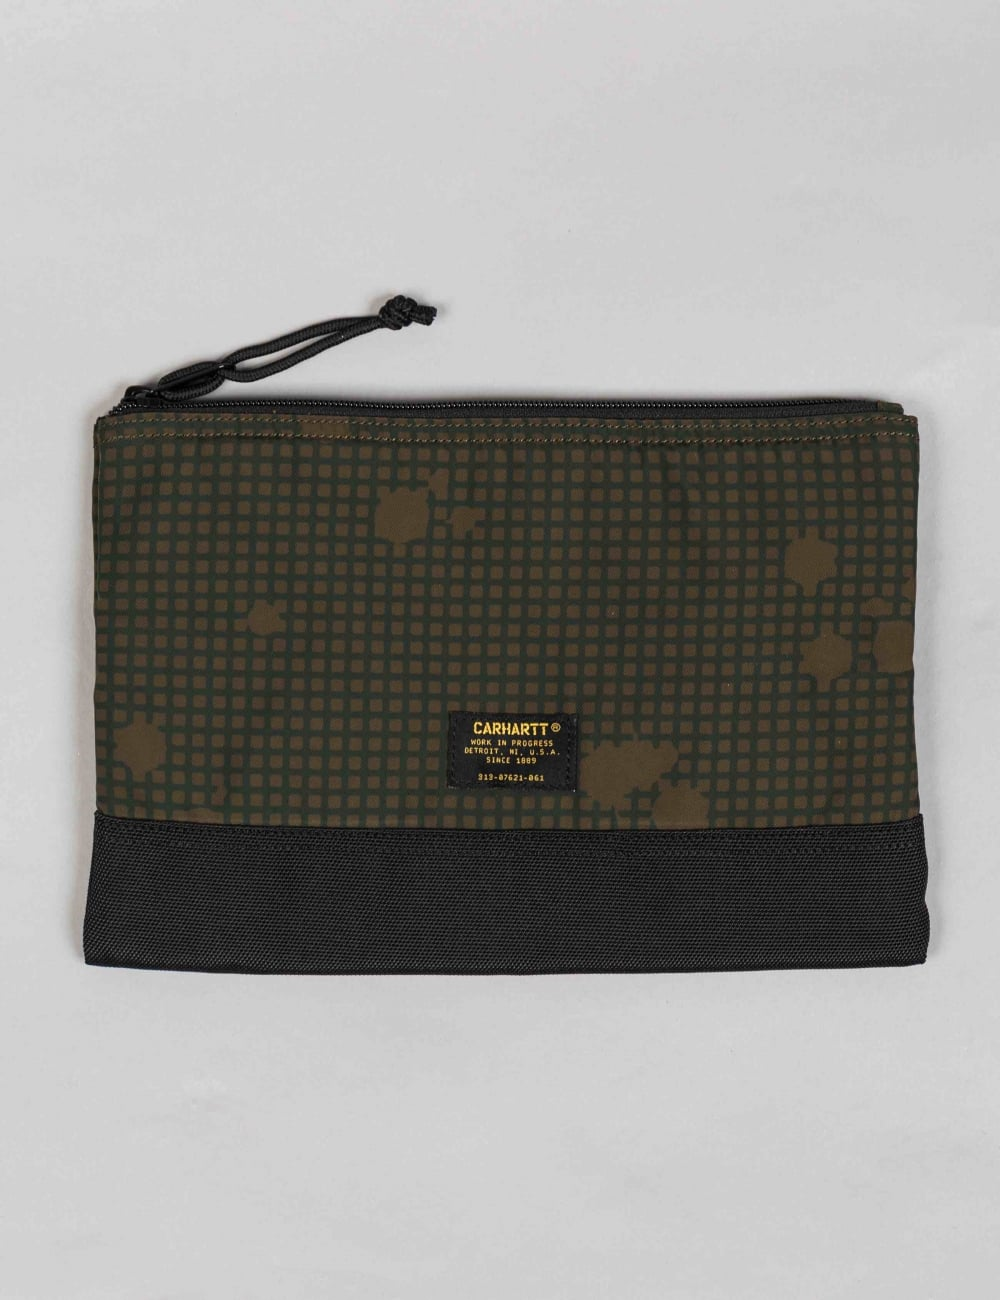 9edf051dc1 Carhartt WIP Military Pouch Large - Camo Night/Combat Green ...